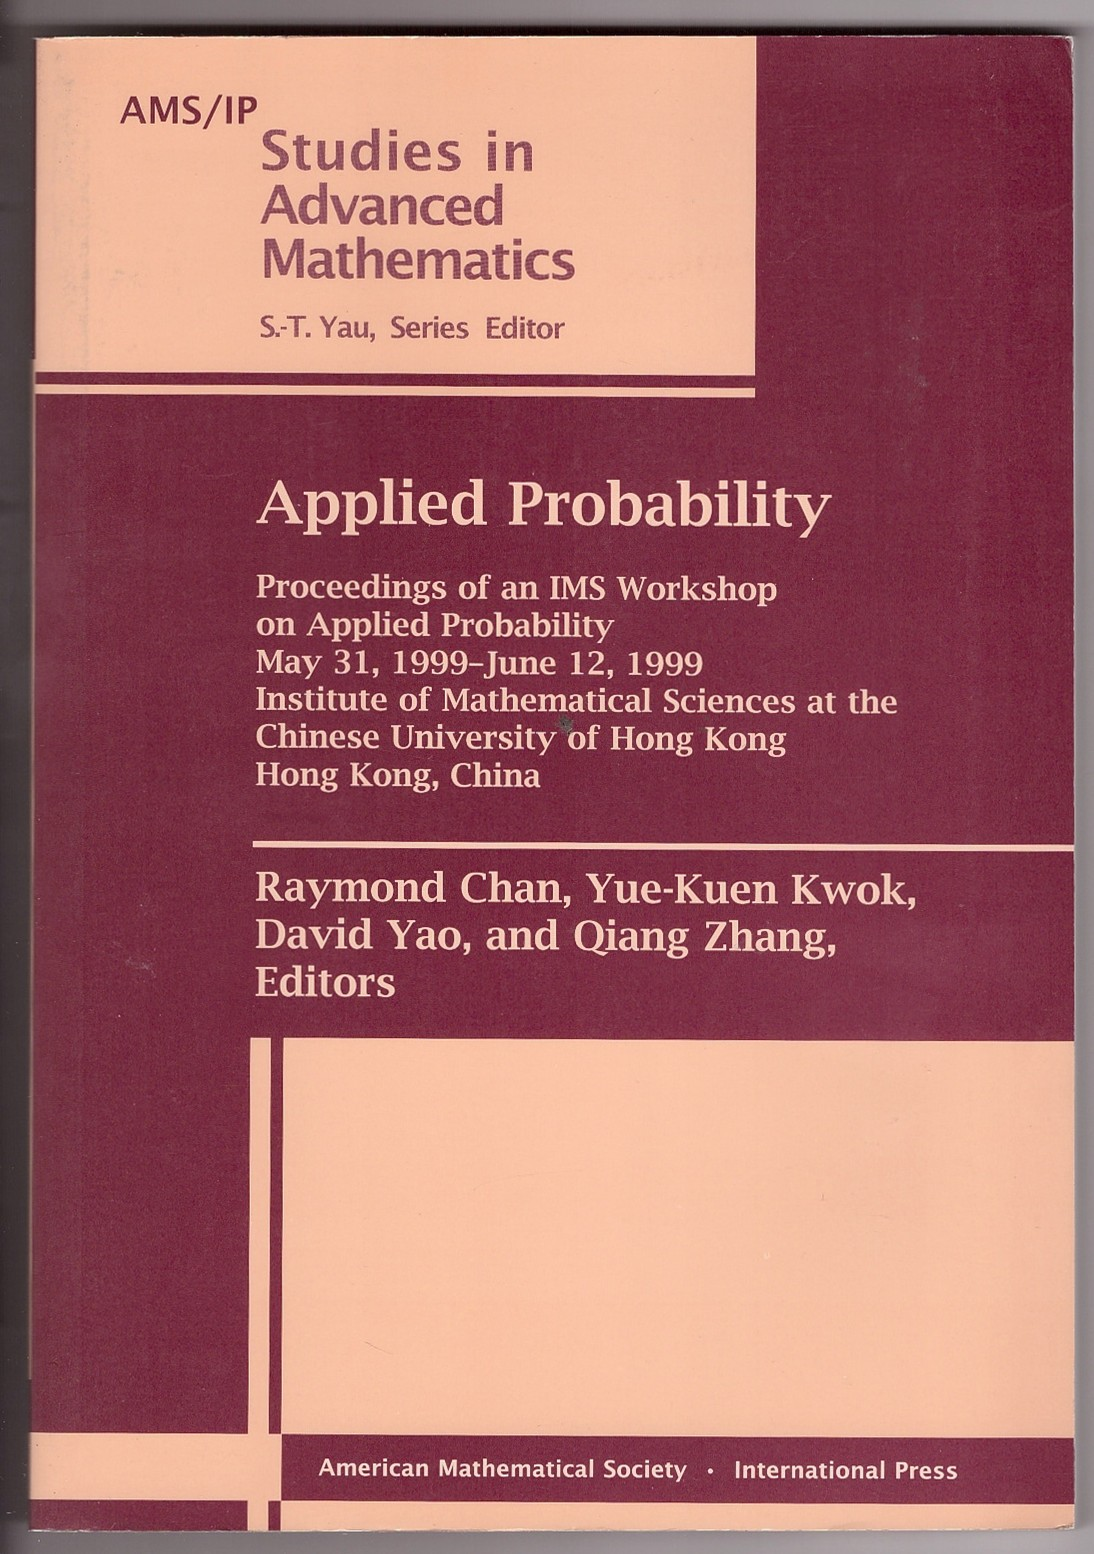 Image for Applied Probability:  Proceedings of an IMS Workshop on Applied Probability, May 31, 1999-June 12, 1999. Institute of Mathematical Sciences at the Chinese University of Hong Kong